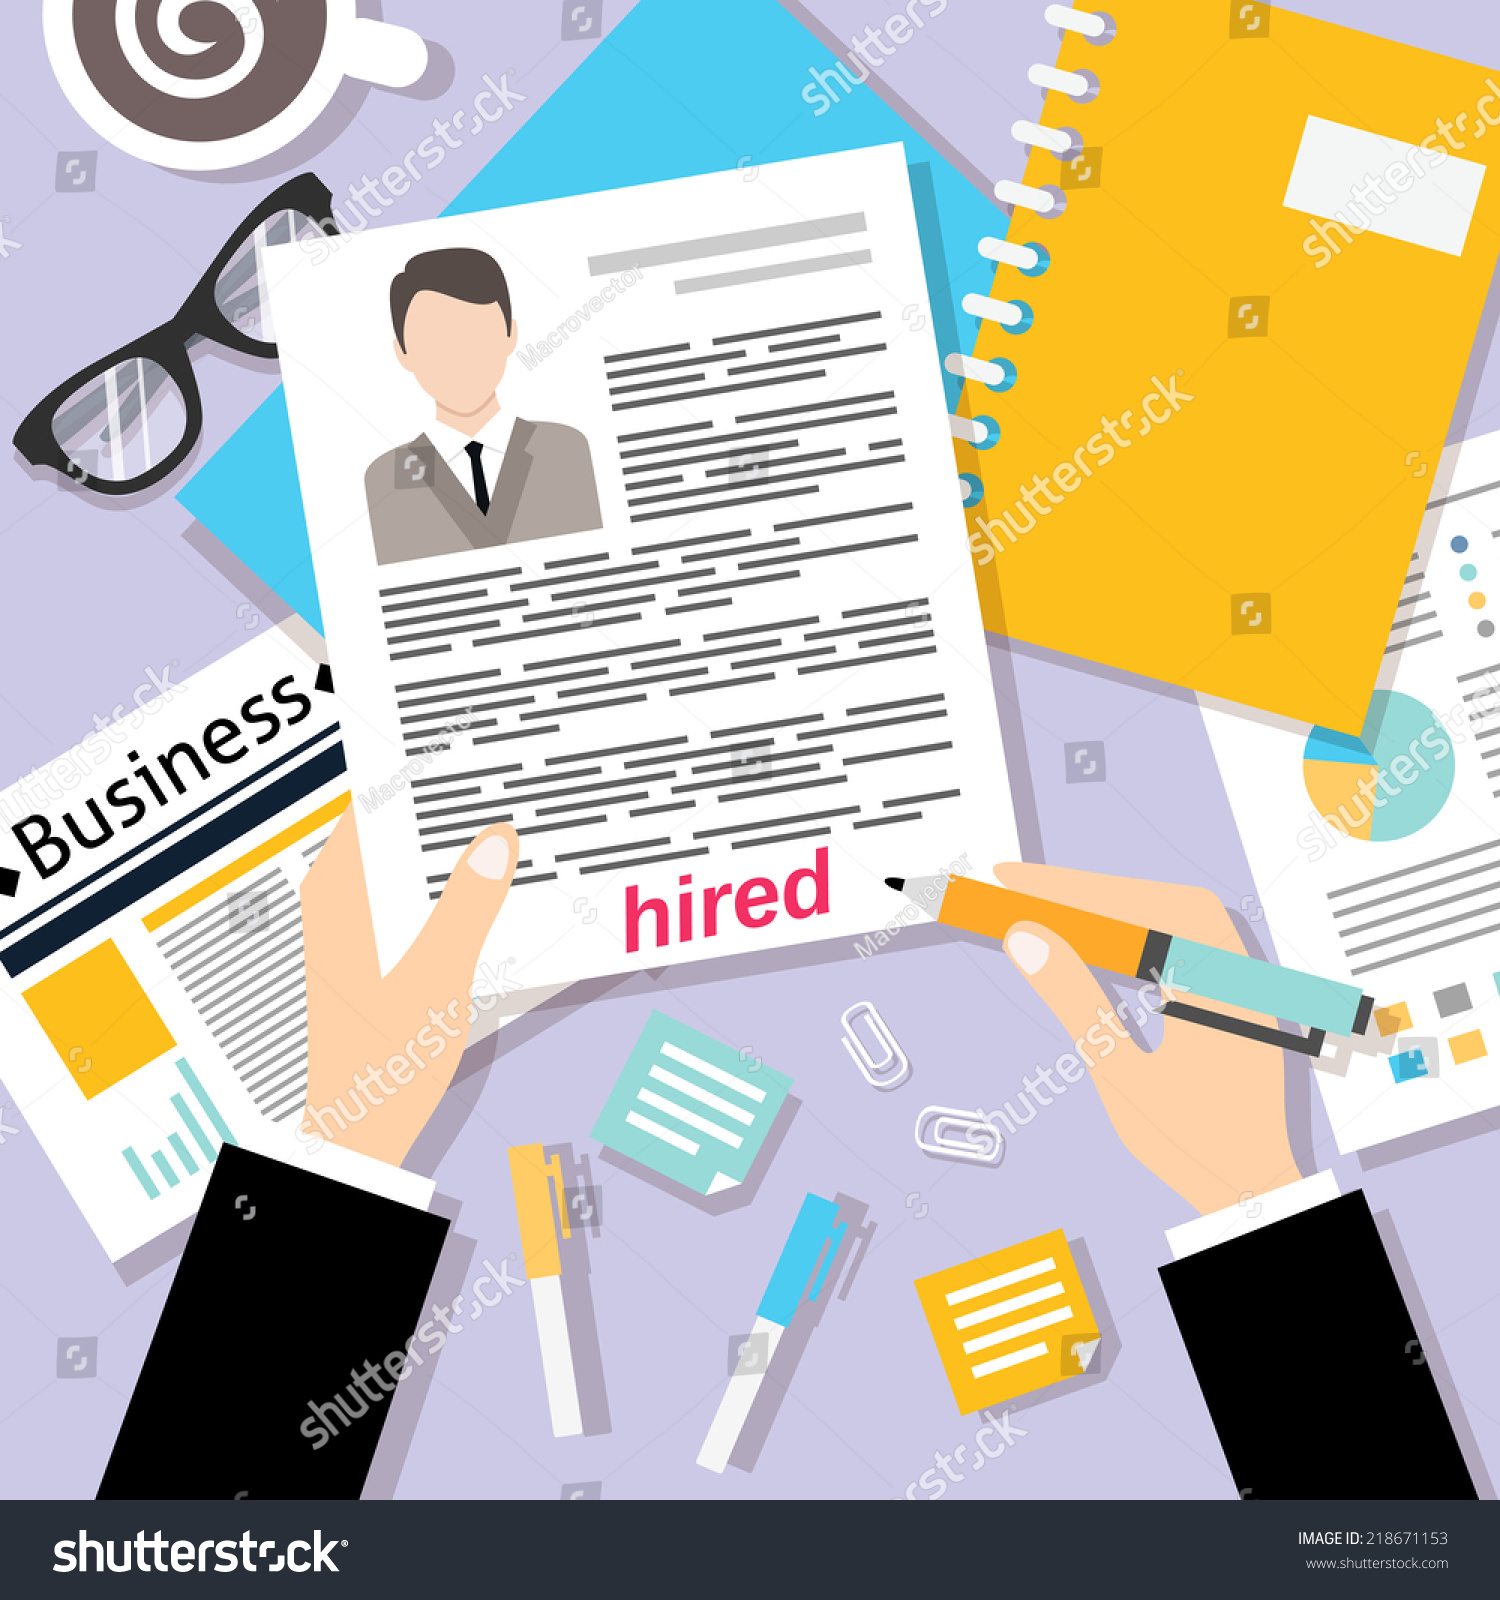 job interview concept with business cv resume vector illustration